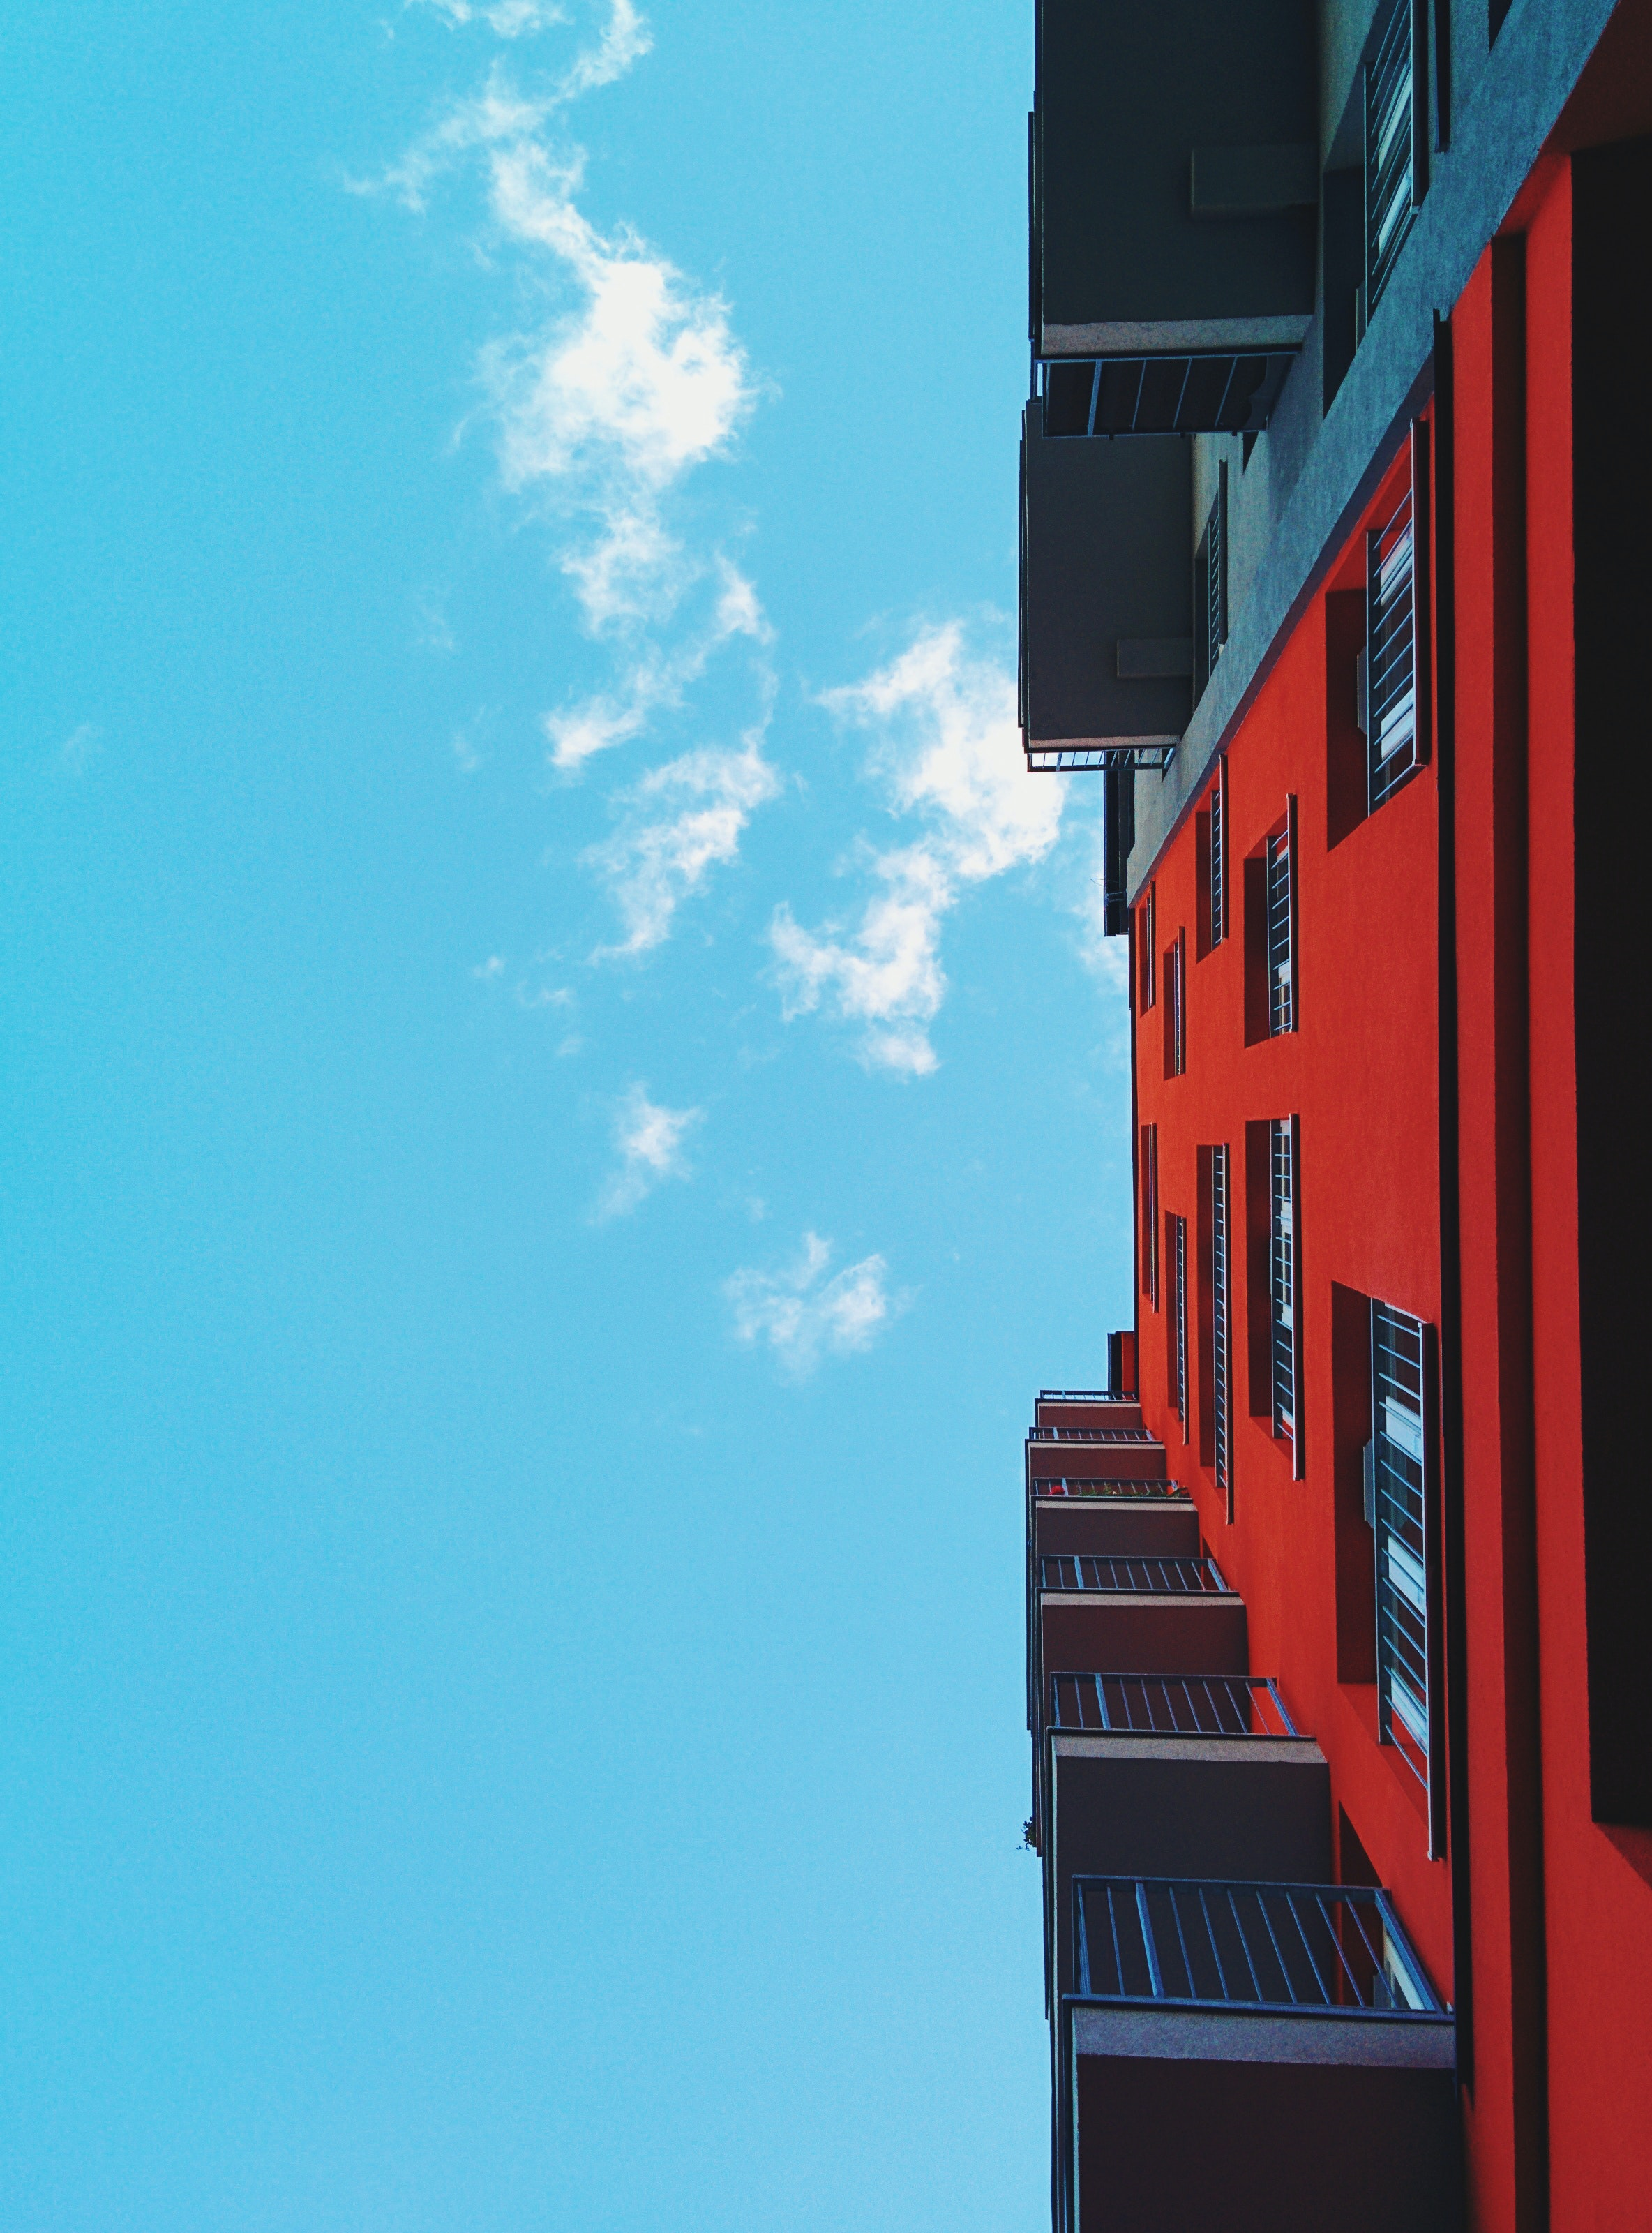 Red Black Wall Building 183 Free Stock Photo